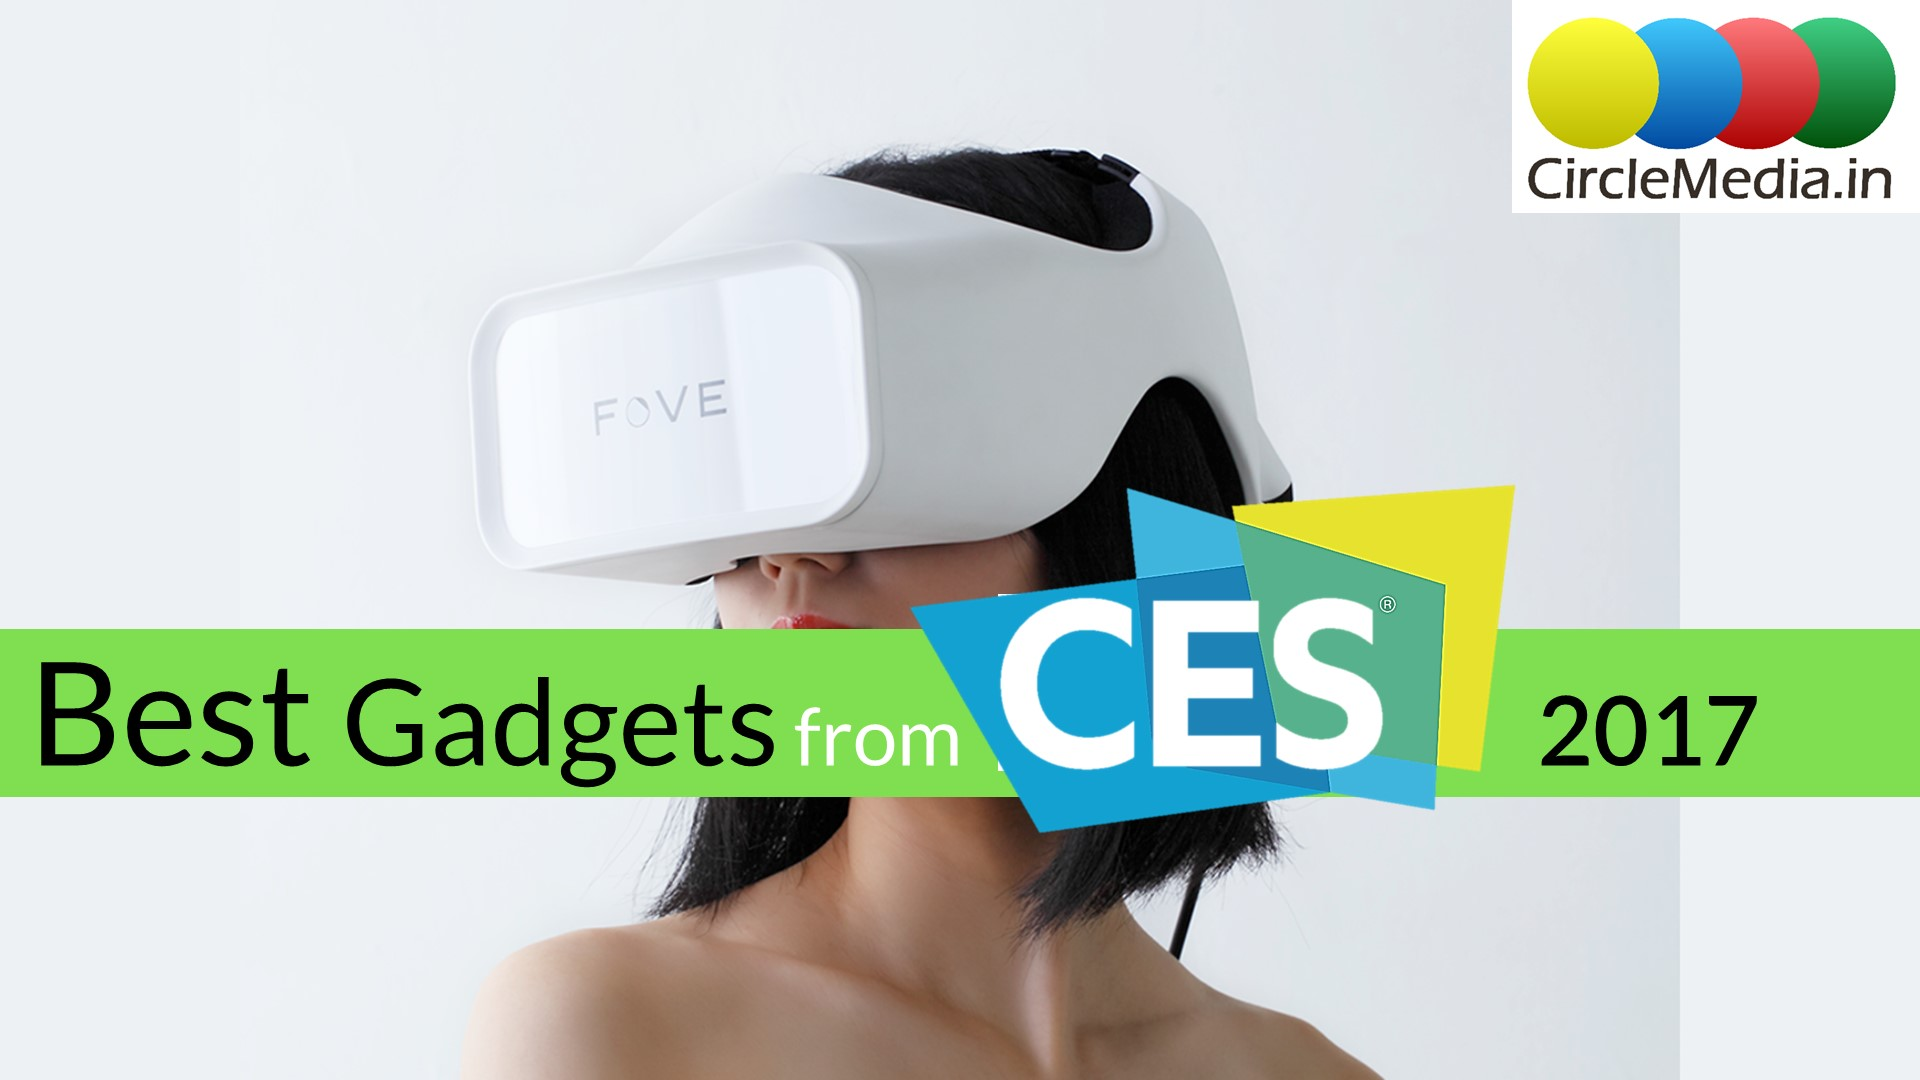 Best Gadgets from CES 2017 | most interesting gadgets from CES | CircleMedia.in